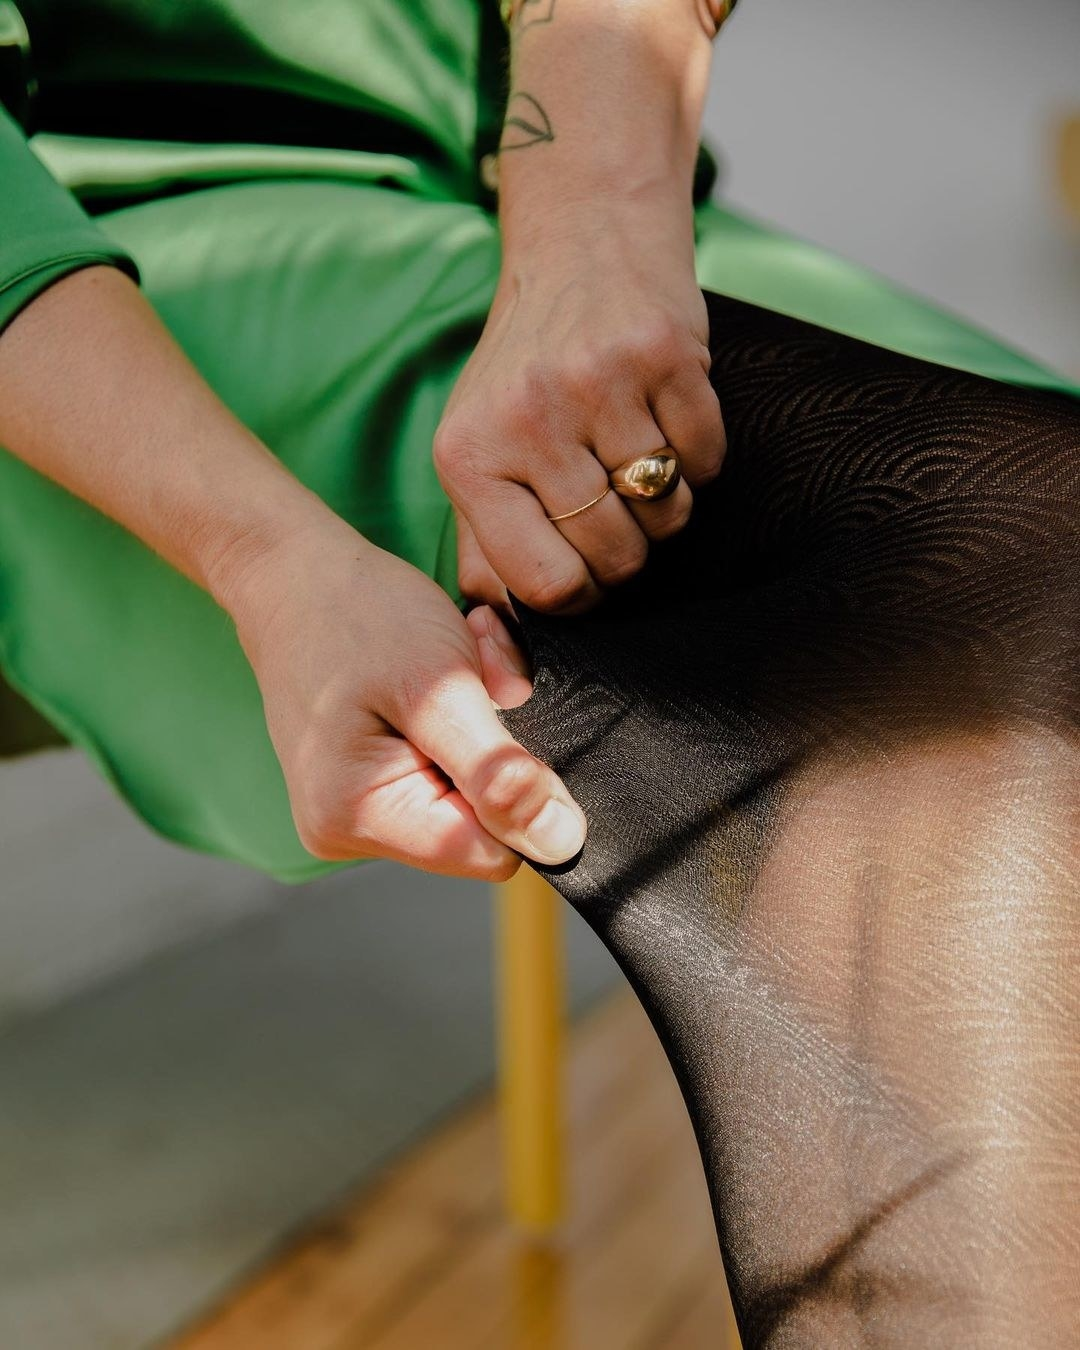 A person pulling at the leggings